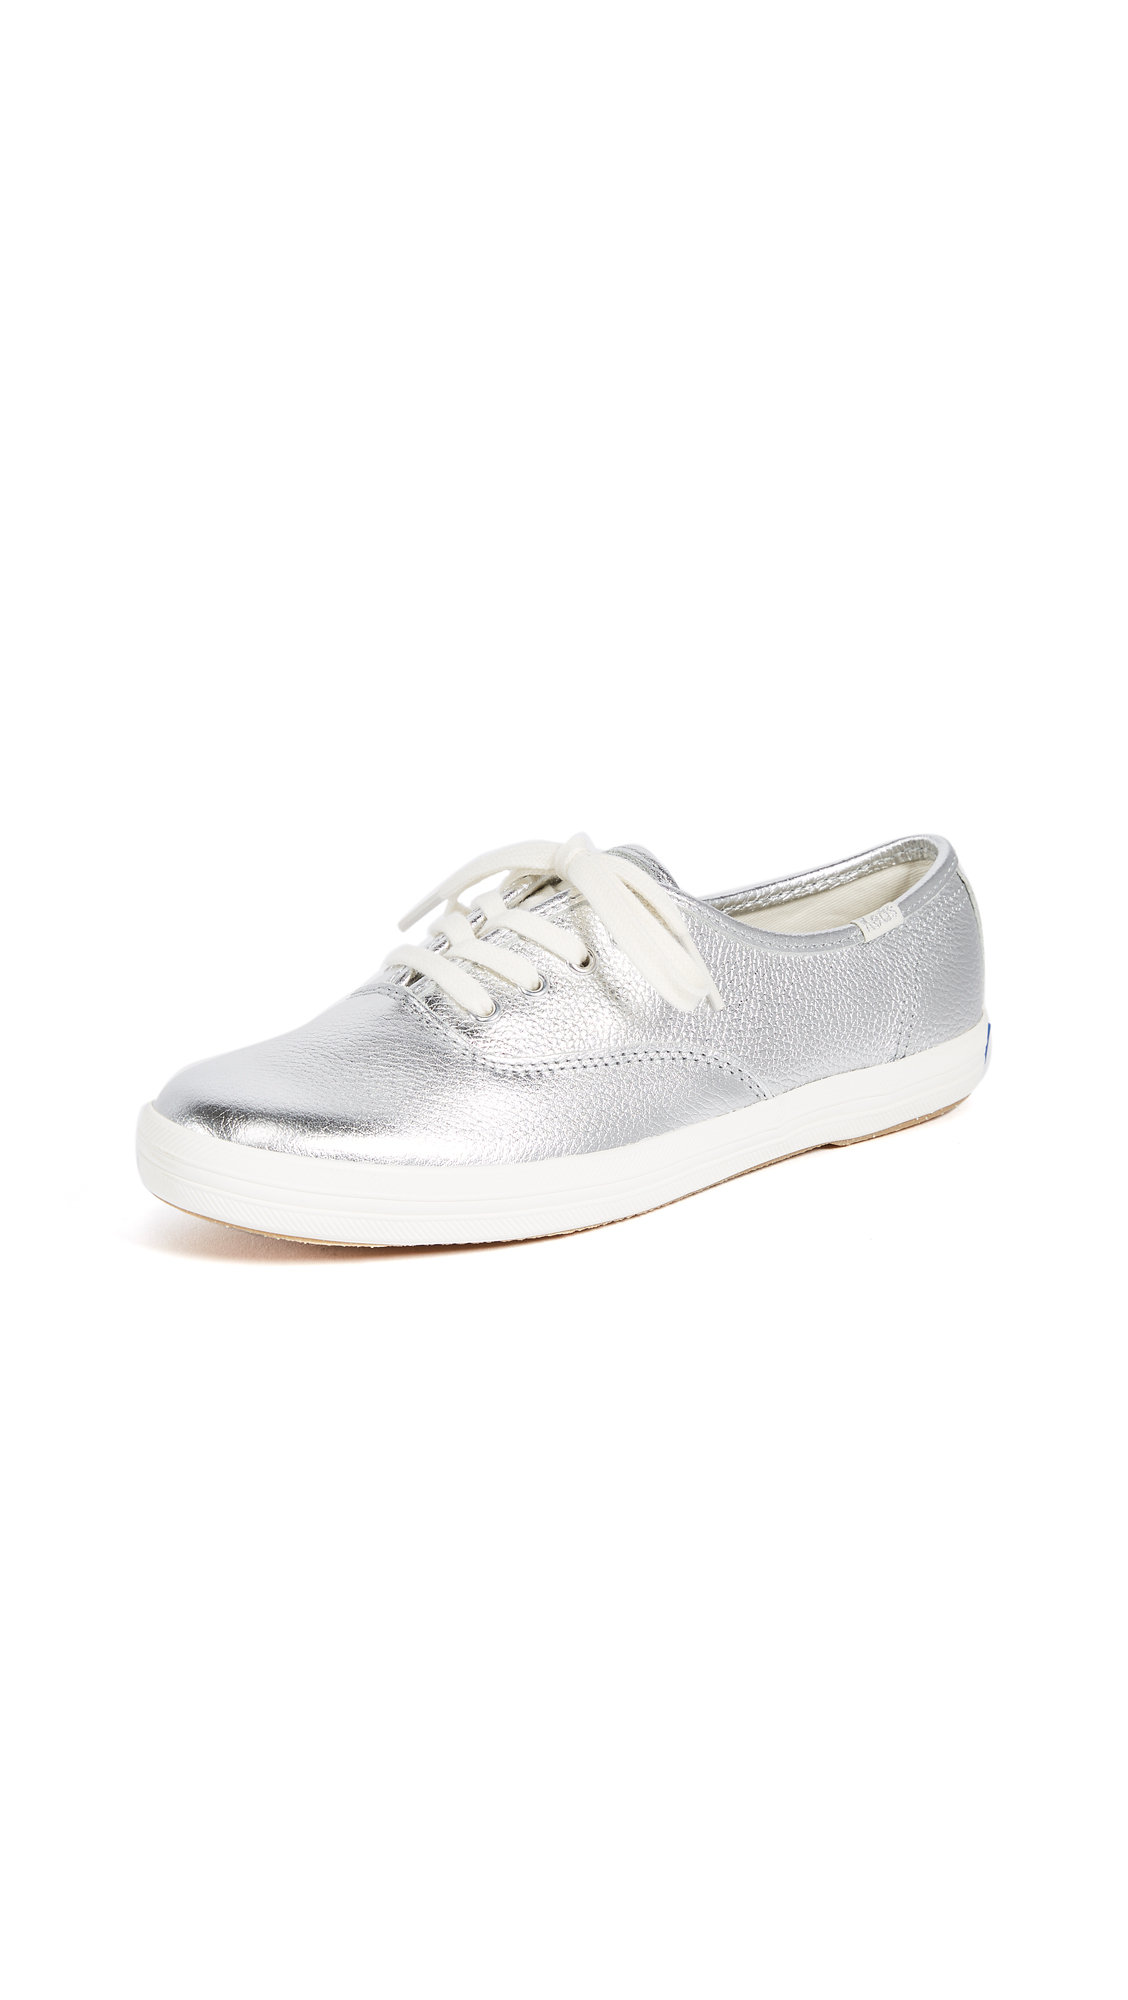 Keds x Kate Spade New York Sneakers - Silver